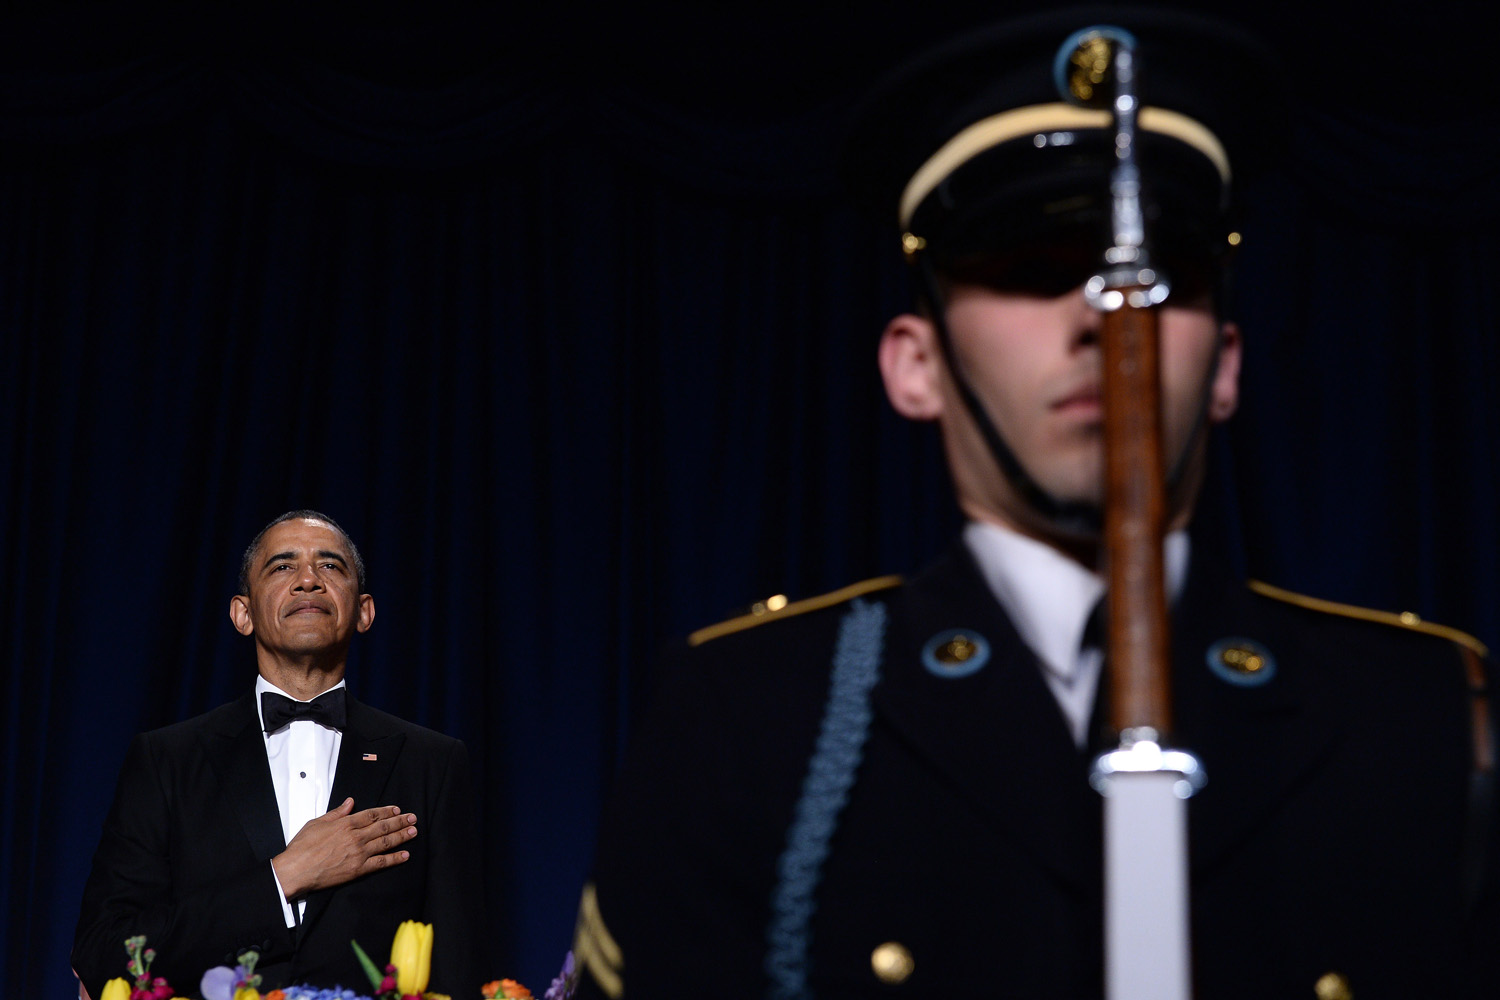 May 3, 2014. US President Barack Obama attends the White House Correspondents Association Dinner in Washington, DC.